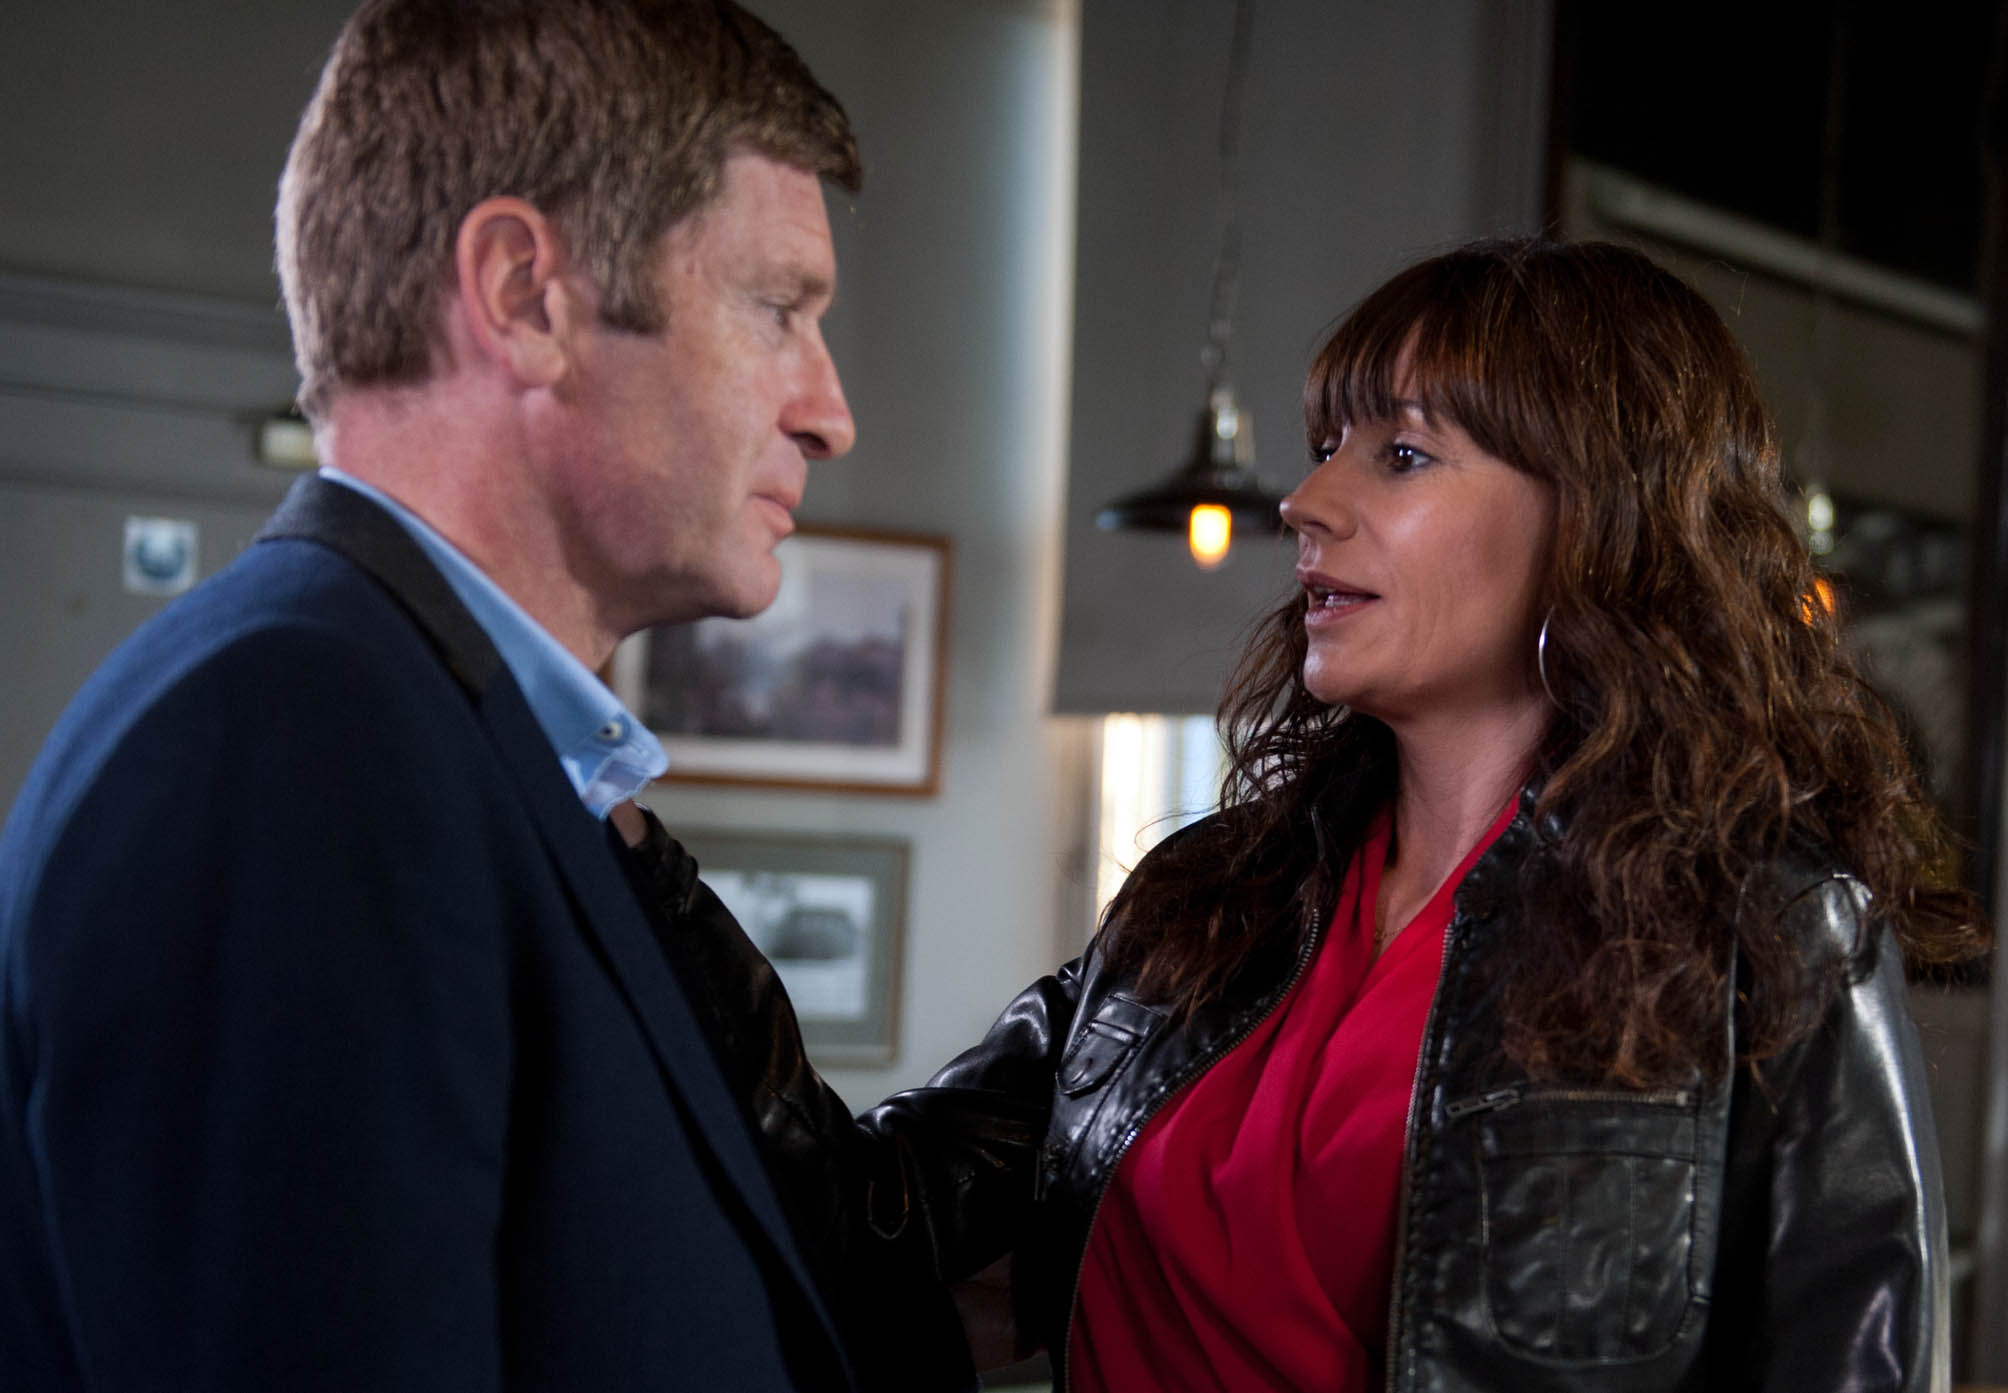 FROM ITV STRICT EMBARGO - No Use Before Tuesday 15 December 2015 Emmerdale - 7388 Friday 1 January 2016 Chas Dingle [LUCY PARGETTER] fakes a hangover so she can meet up with Gordon [GARY MAVERS] but she's left shocked by what Gordon tells her. They share their experiences about life after their split but is Gordon being honest? Chas surprises herself when she kisses Gordon but how will Aaron react if he finds out his mum has seen his dad? Picture contact: david.crook@itv.com on 0161 952 6214 Photographer - Amy Brammall This photograph is (C) ITV Plc and can only be reproduced for editorial purposes directly in connection with the programme or event mentioned above, or ITV plc. Once made available by ITV plc Picture Desk, this photograph can be reproduced once only up until the transmission [TX] date and no reproduction fee will be charged. Any subsequent usage may incur a fee. This photograph must not be manipulated [excluding basic cropping] in a manner which alters the visual appearance of the person photographed deemed detrimental or inappropriate by ITV plc Picture Desk. This photograph must not be syndicated to any other company, publication or website, or permanently archived, without the express written permission of ITV Plc Picture Desk. Full Terms and conditions are available on the website www.itvpictures.comFROM ITV STRICT EMBARGO - No Use Before Tuesday 15 December 2015 Emmerdale - 7383 Monday 28th December 2015 Paddy Kirk [DOMINIC BRUNT] meets up with Tess and is touched when she gives him a Christmas present. She suggests he takes her to the cinema. Later, Paddy is sickened by a close shave when he has to cover to Rhona Goskirk [ZOE HENRY]. Picture contact: david.crook@itv.com on 0161 952 6214 Photographer - Amy Brammall This photograph is (C) ITV Plc and can only be reproduced for editorial purposes directly in connection with the programme or event mentioned above, or ITV plc. Once made available by ITV plc Picture Desk, this photograph can be reprod